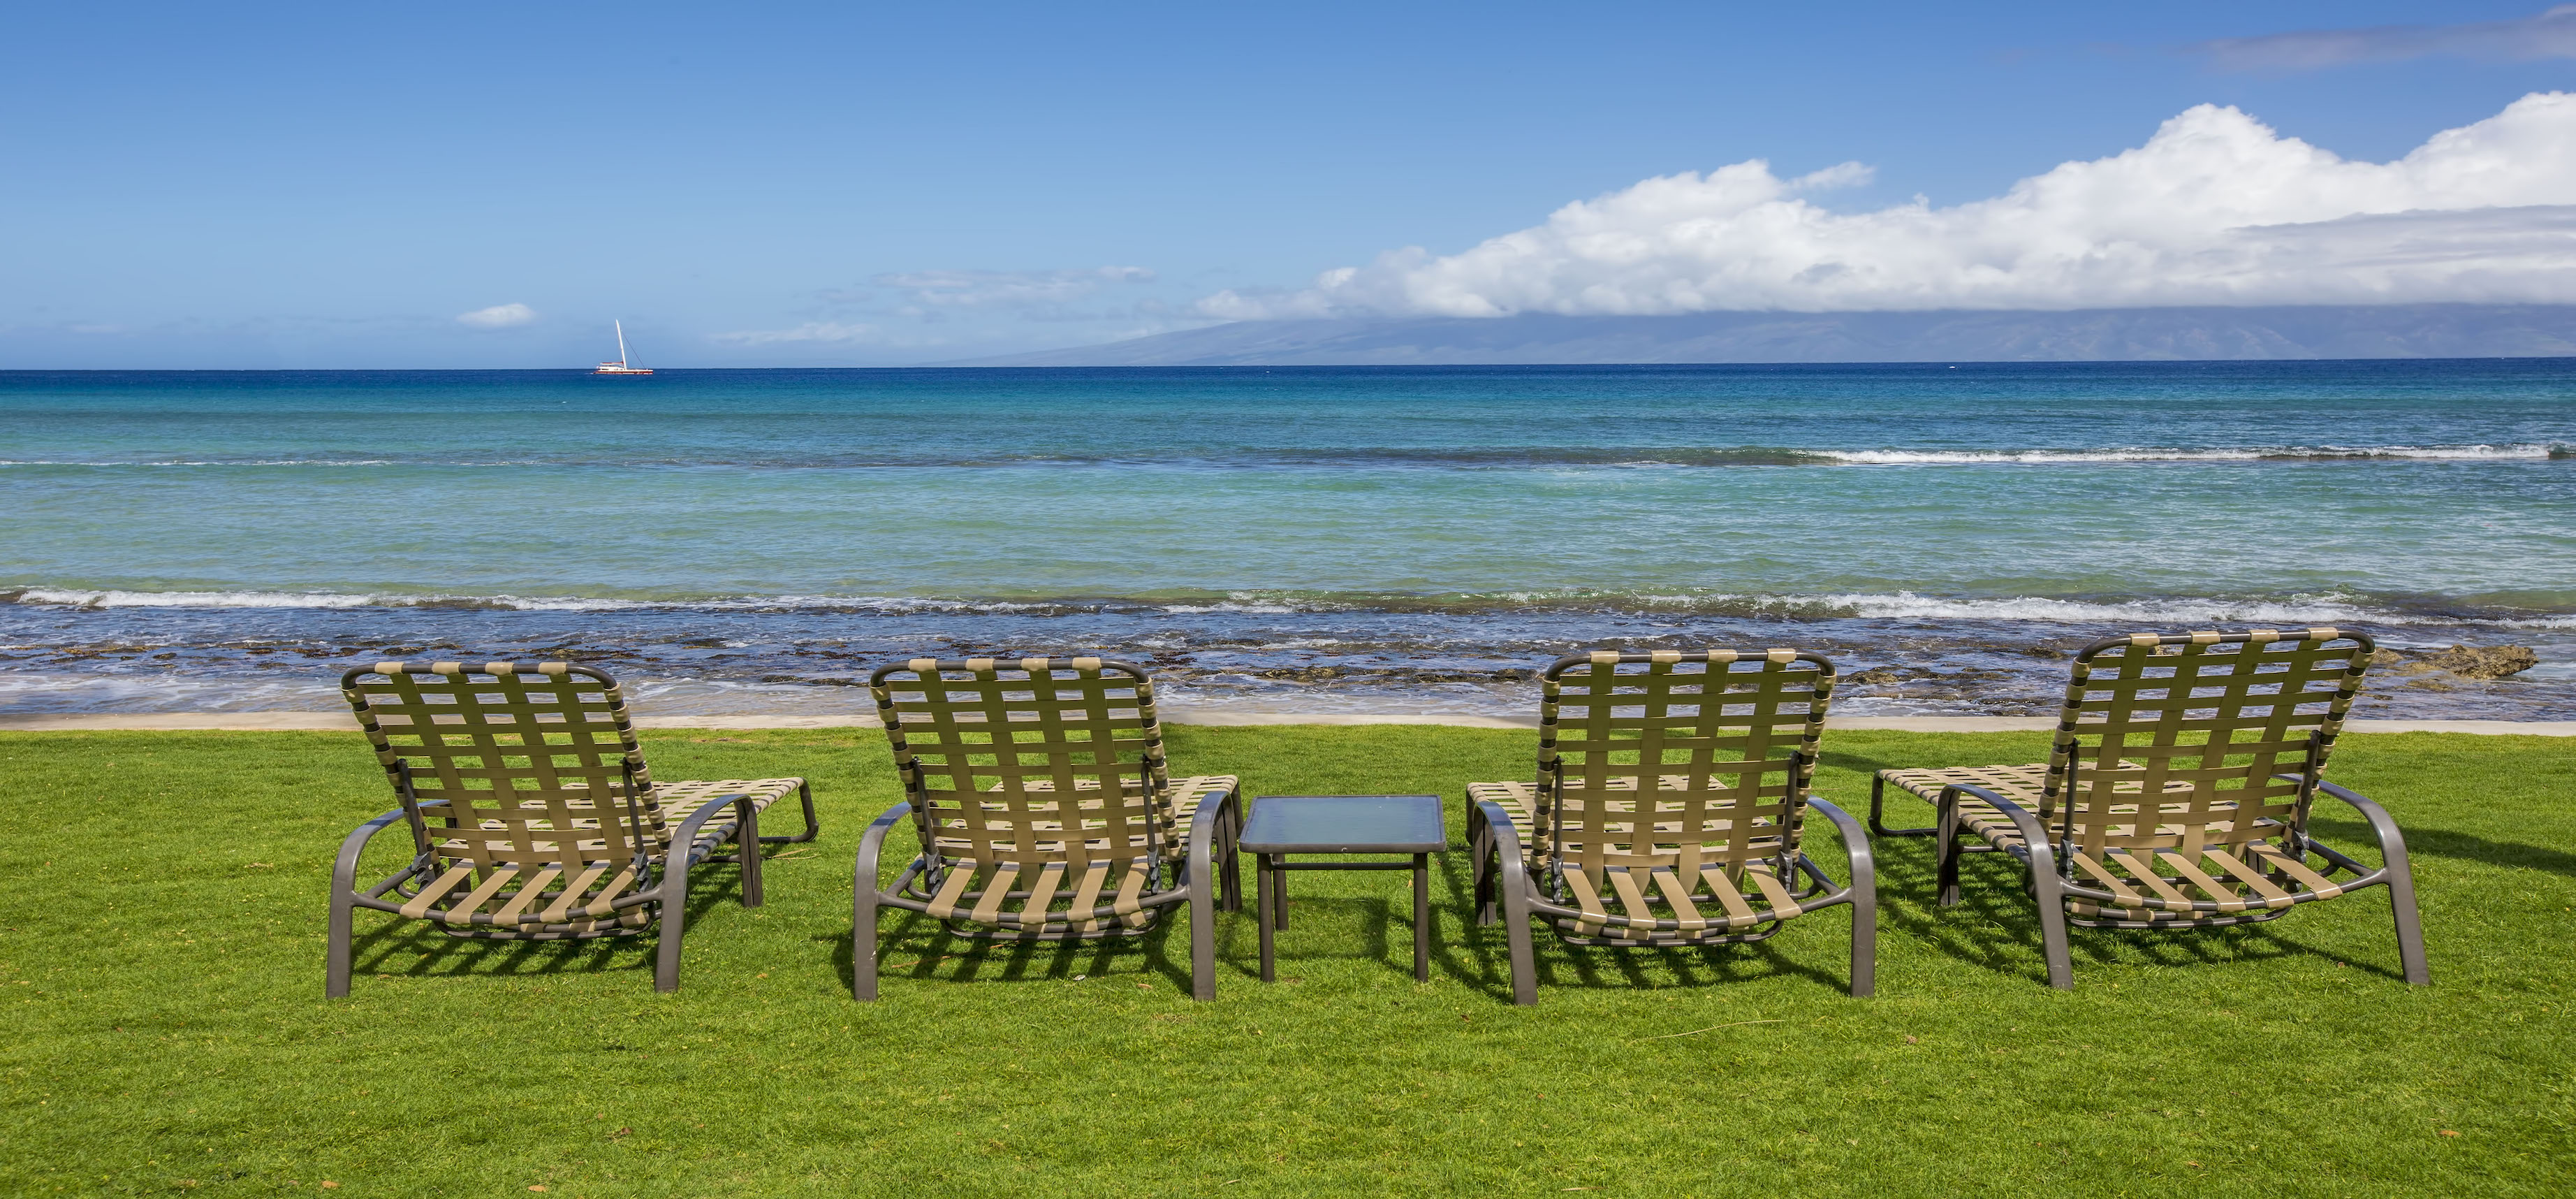 Kaanapali Beach Rentals - Paki Maui - Lawn chairs facing the ocean.